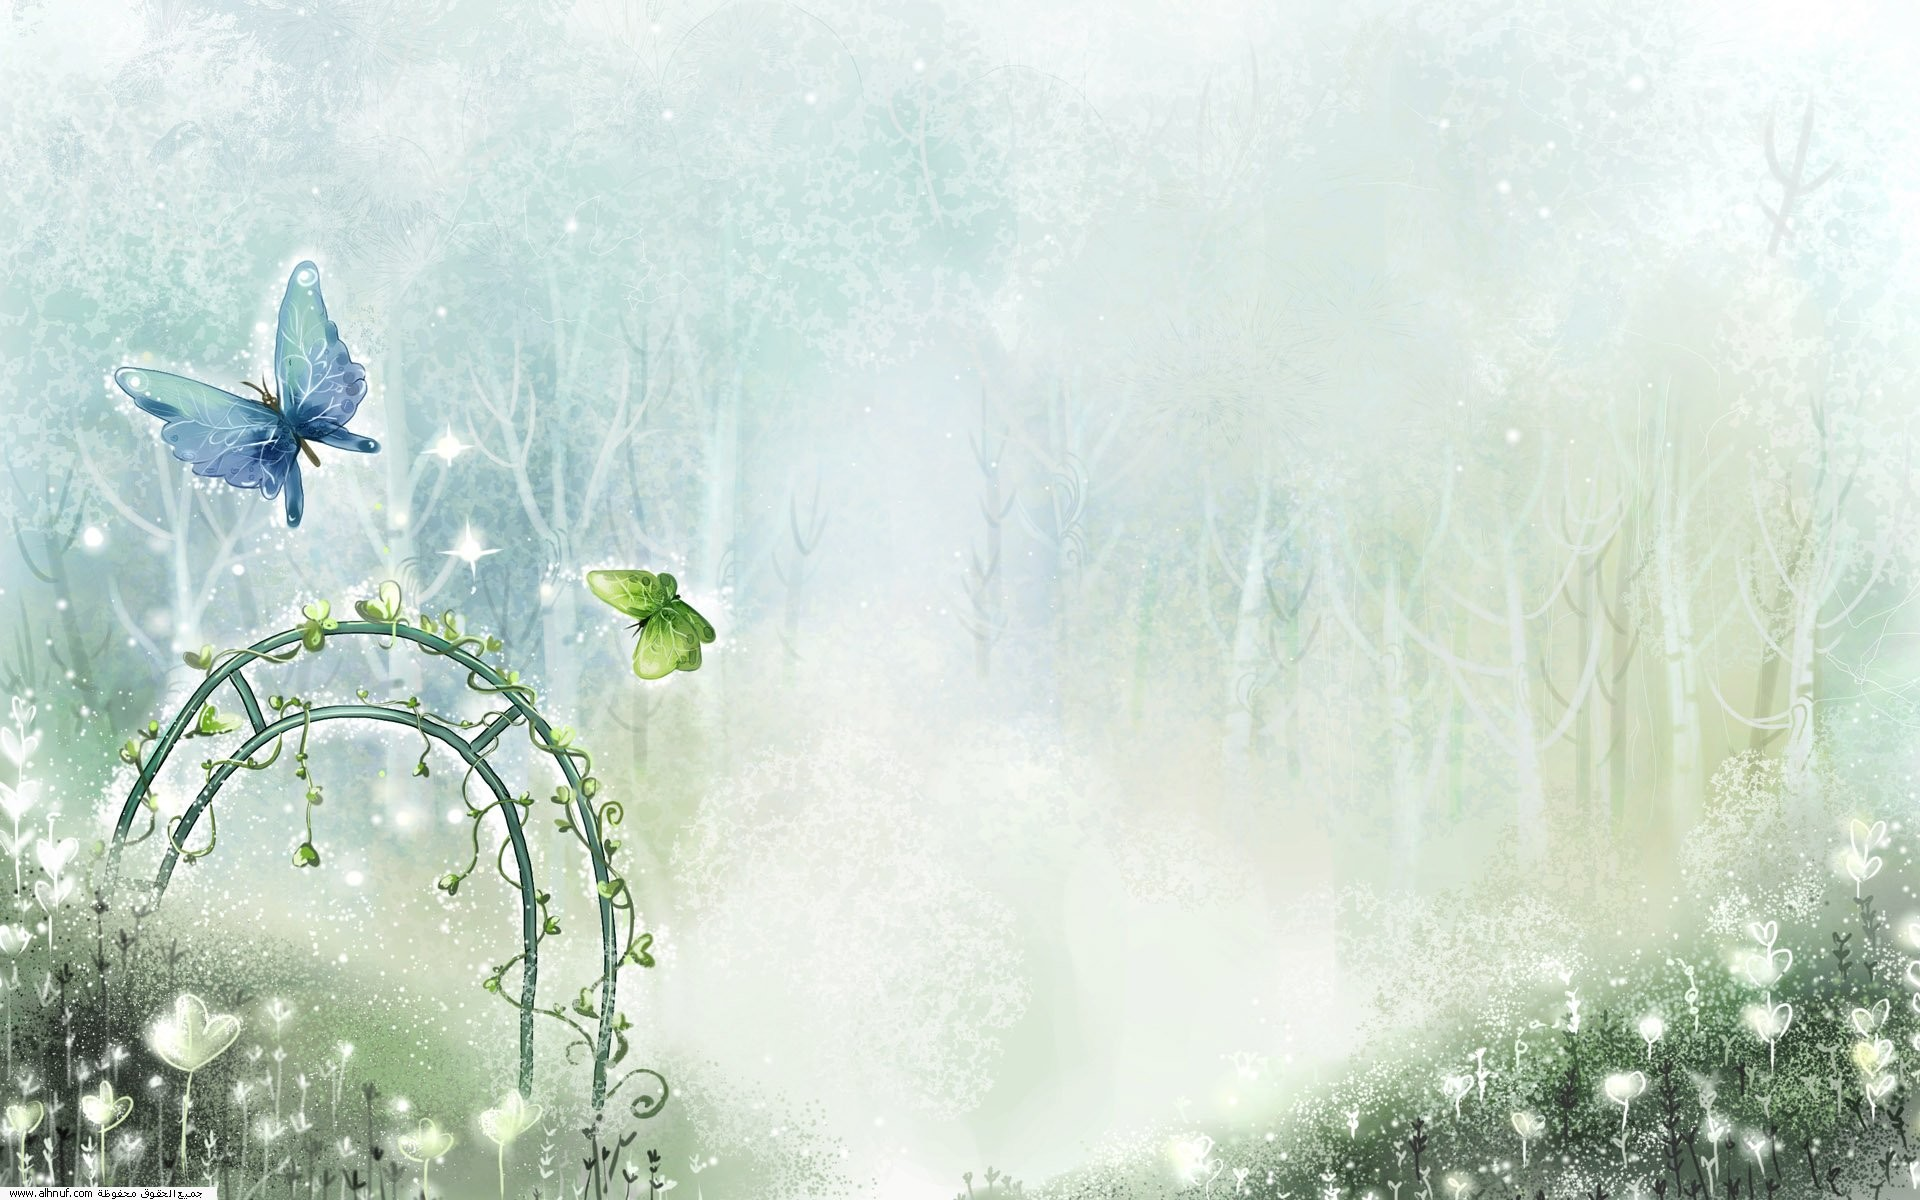 Snow Falling Video Wallpaper Fairytale Background 55 Images